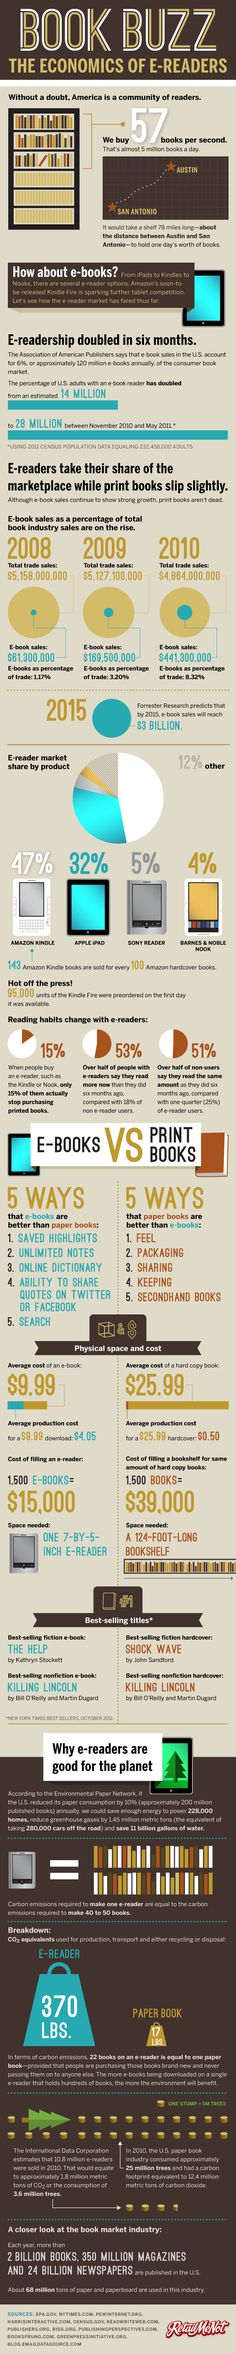 The economics of e-Readers #ebooks  L'economia degli e-readers, ebooks e il rapporto con i libri